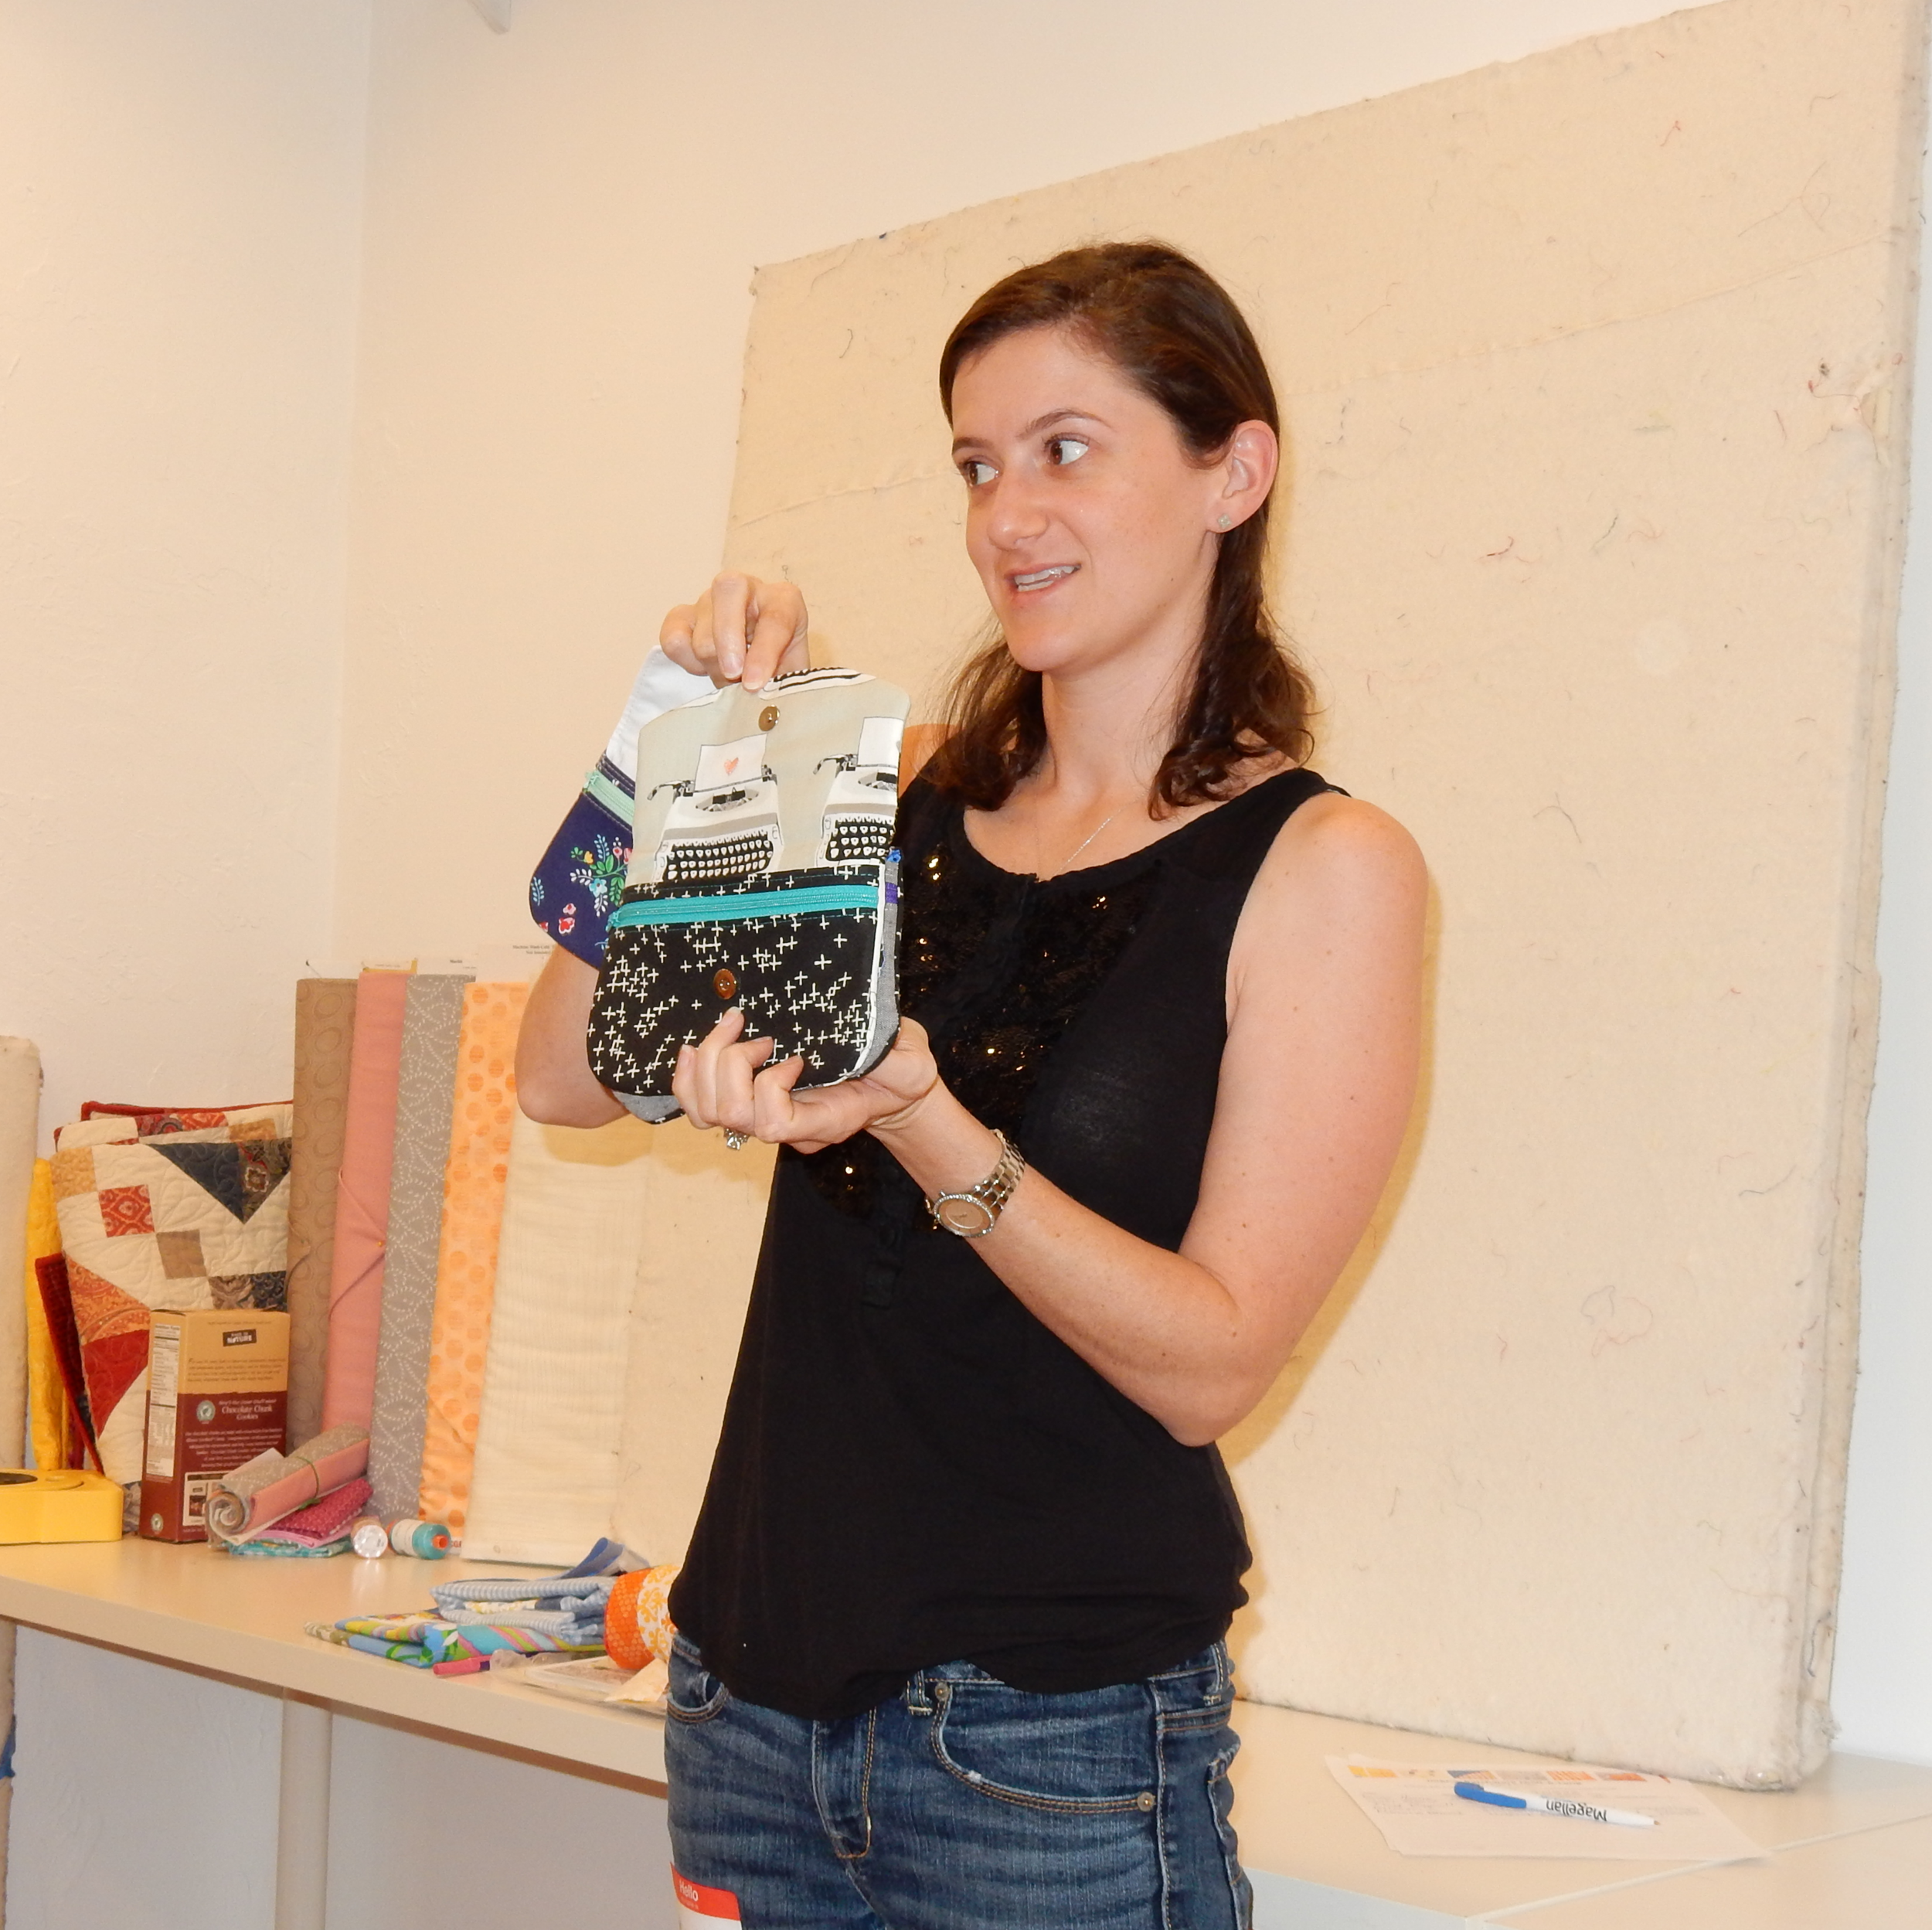 Alyson Christianson brought in some fun clutches, made with modern fabric.